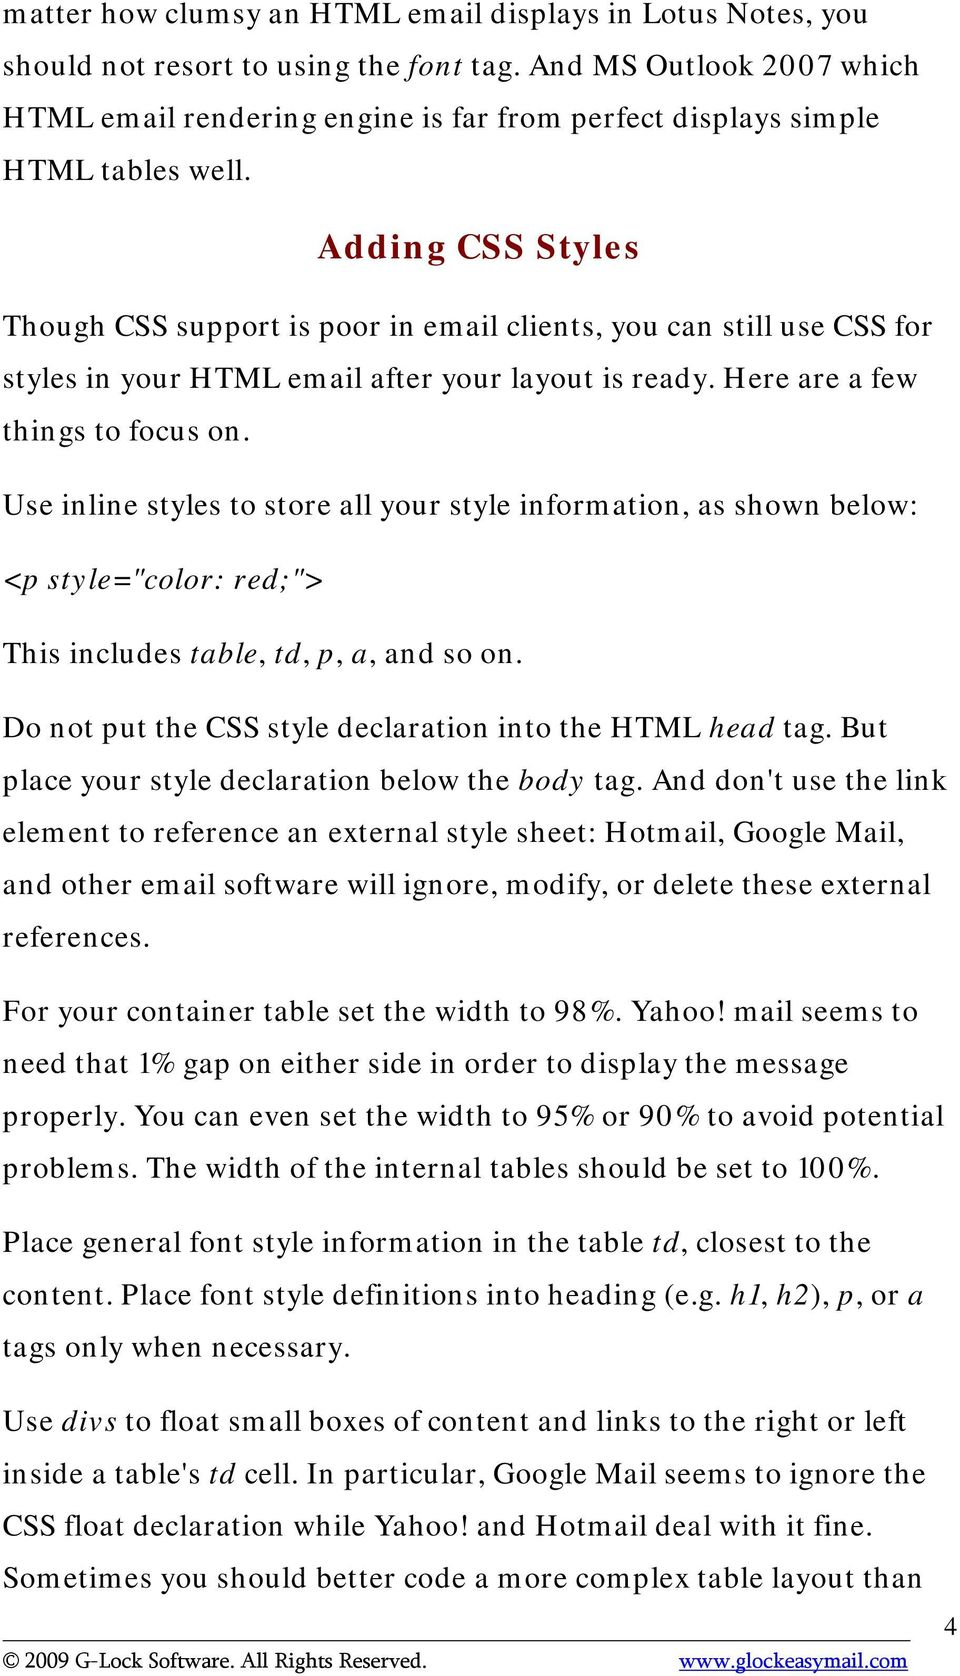 Adding CSS Styles Though CSS support is poor in email clients, you can still use CSS for styles in your HTML email after your layout is ready. Here are a few things to focus on.